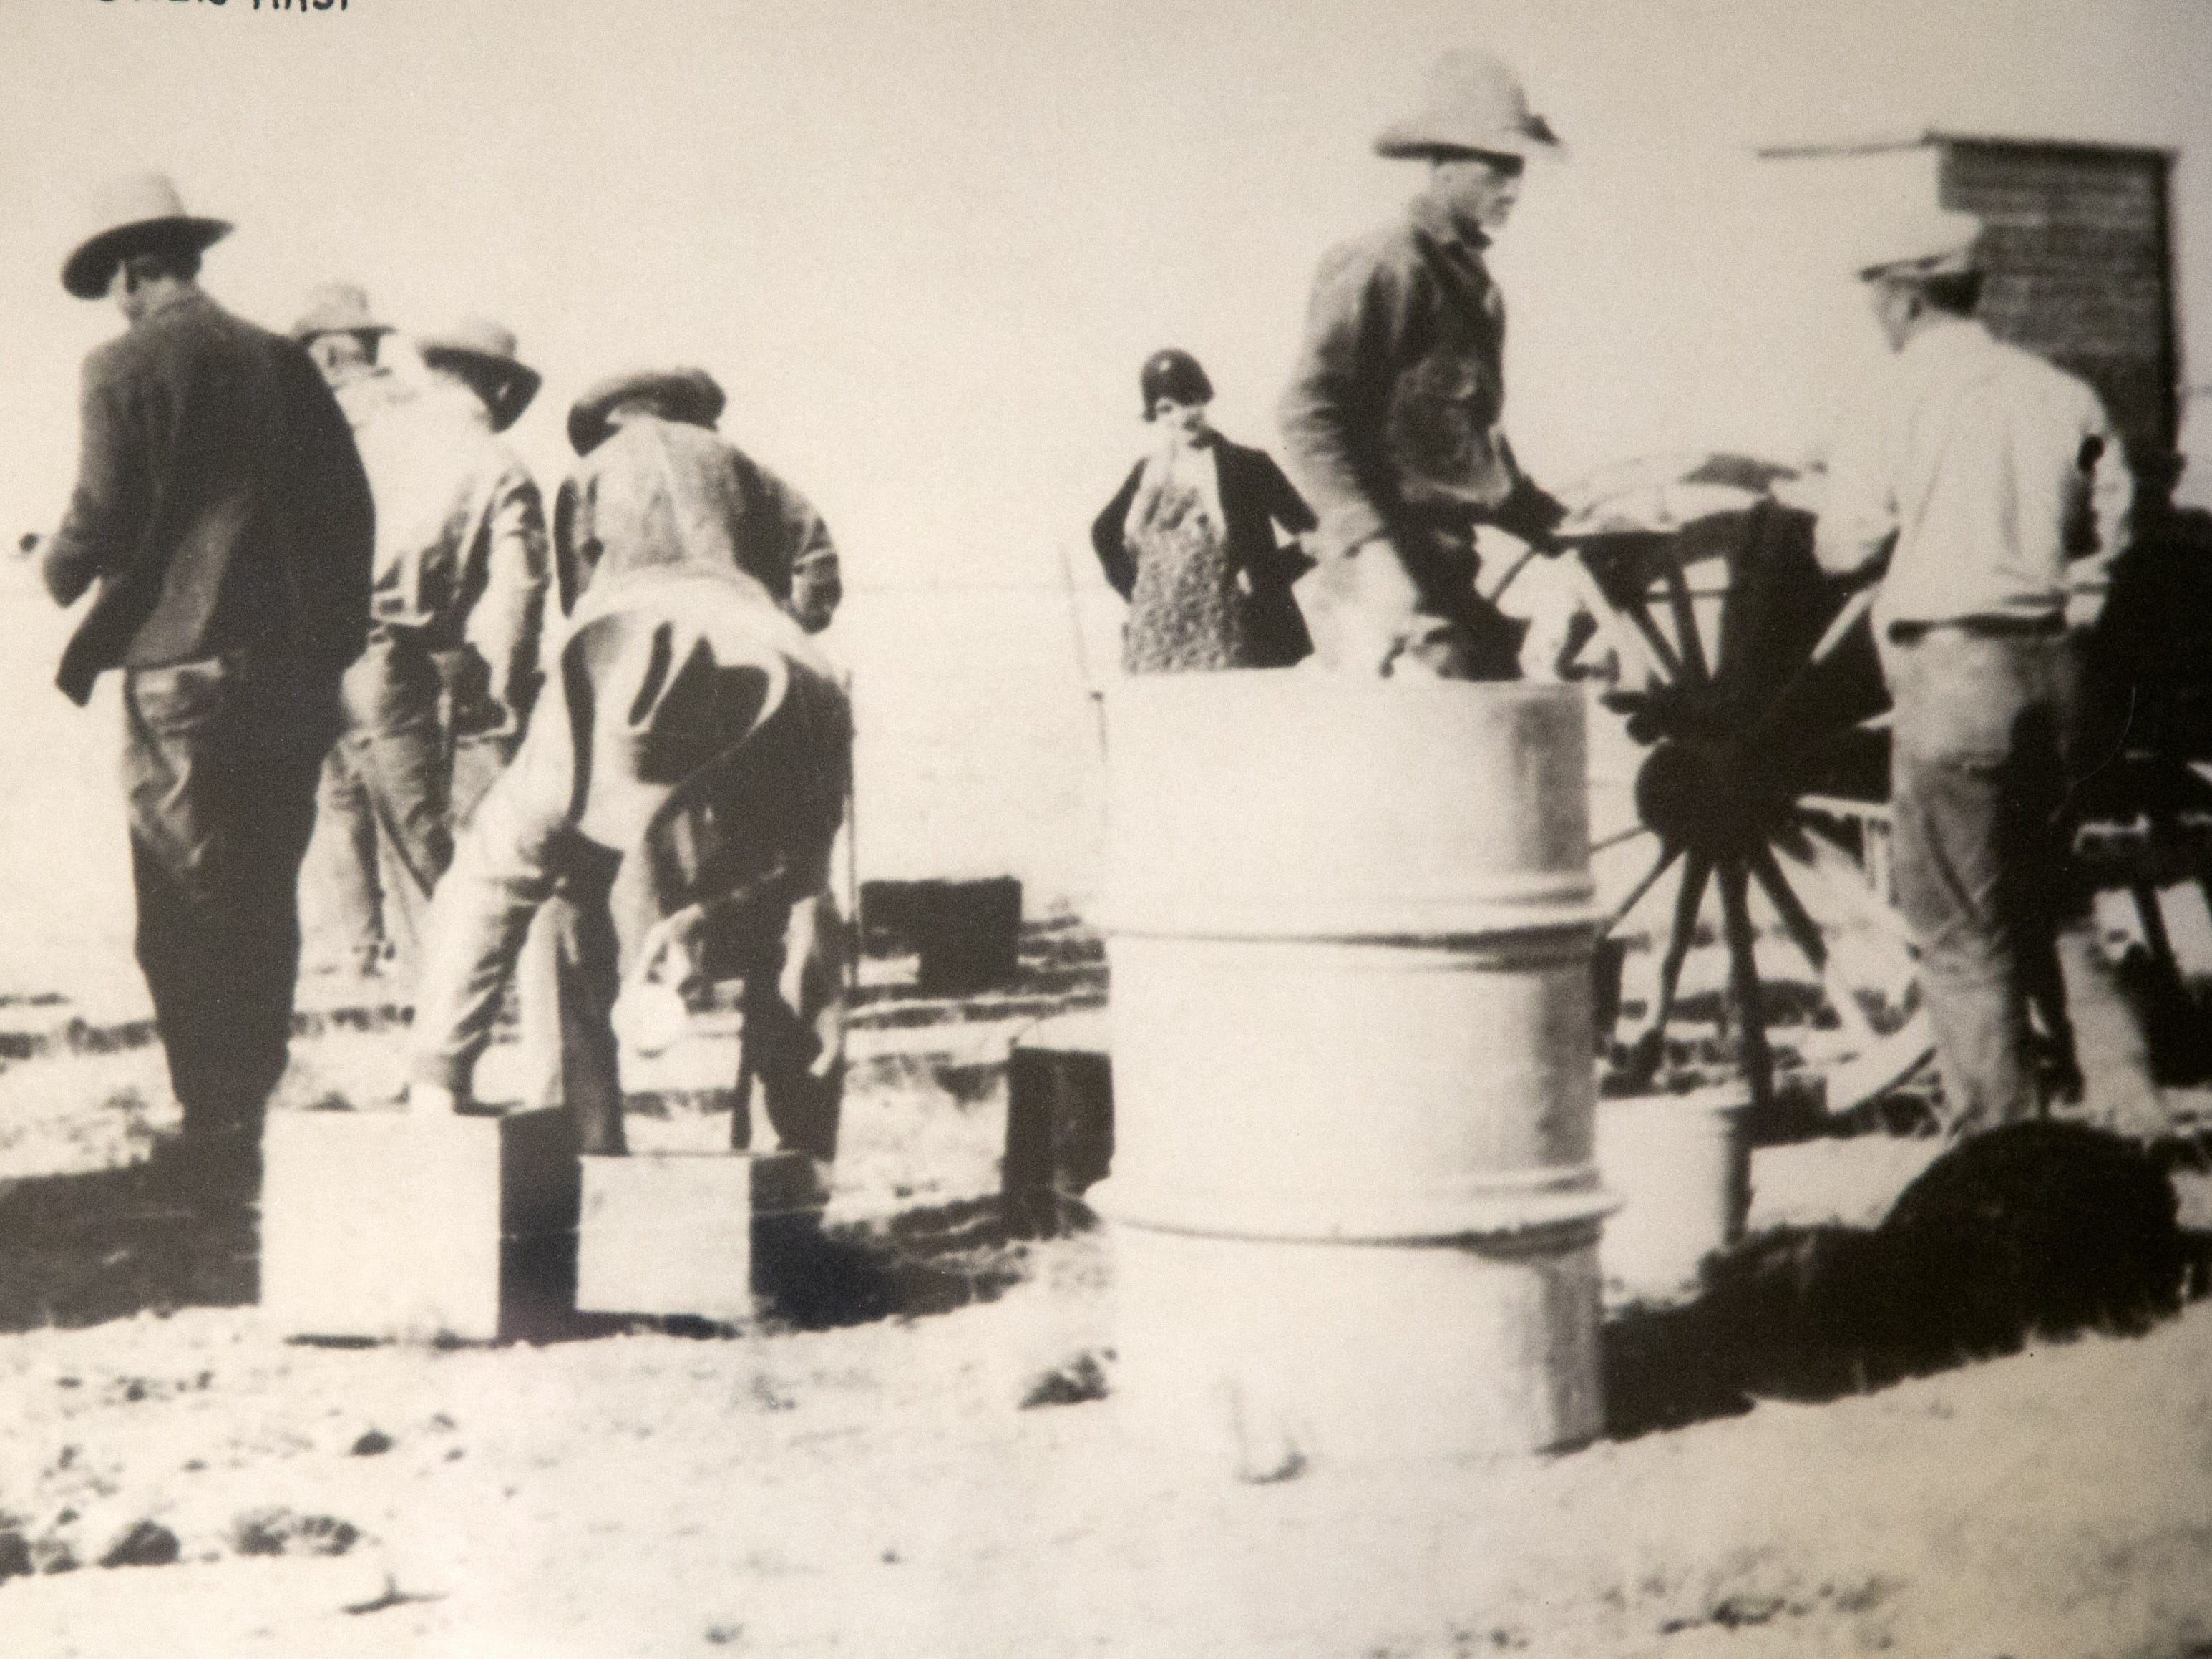 Life on the Lazy B Ranch in Duncan Ariz., in 1930. Ada Mae Wilkey Day (background center) is seen pregnant with Sandra Day O'Connor. Former Supreme Court Justice Sandra Day O'Connor grew up on the ranch.